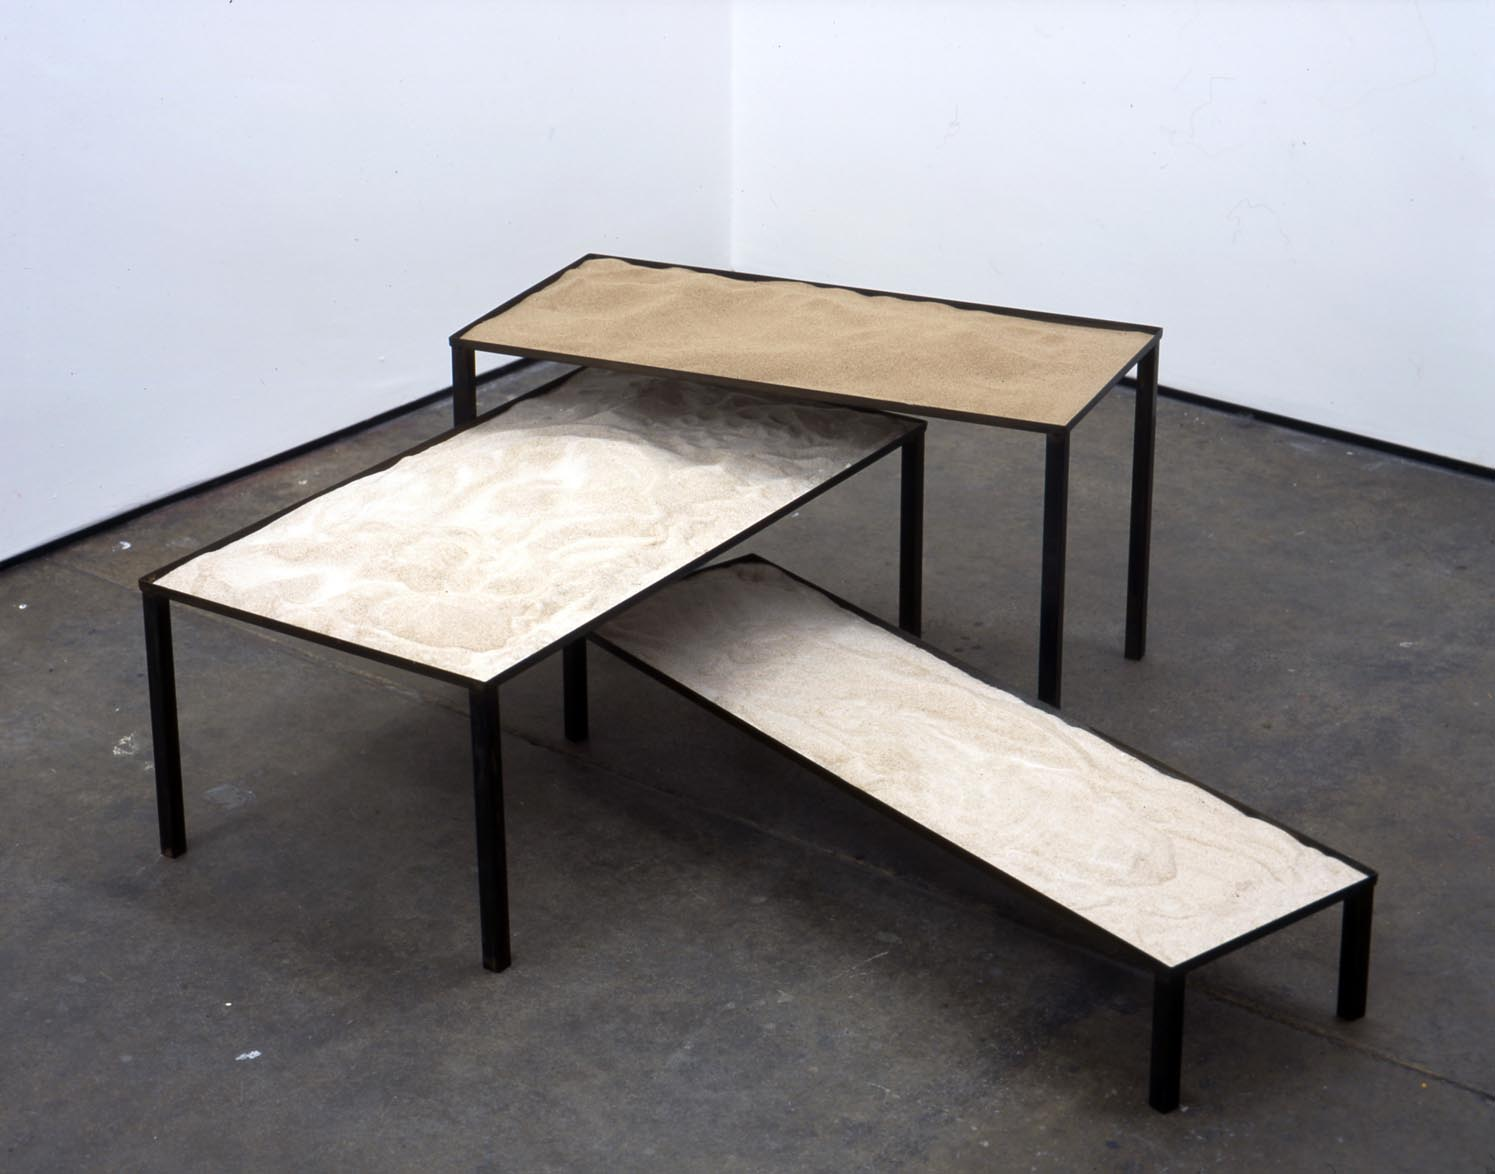 Nest of Tables 2006 steel & sand 38.5x120x120cm